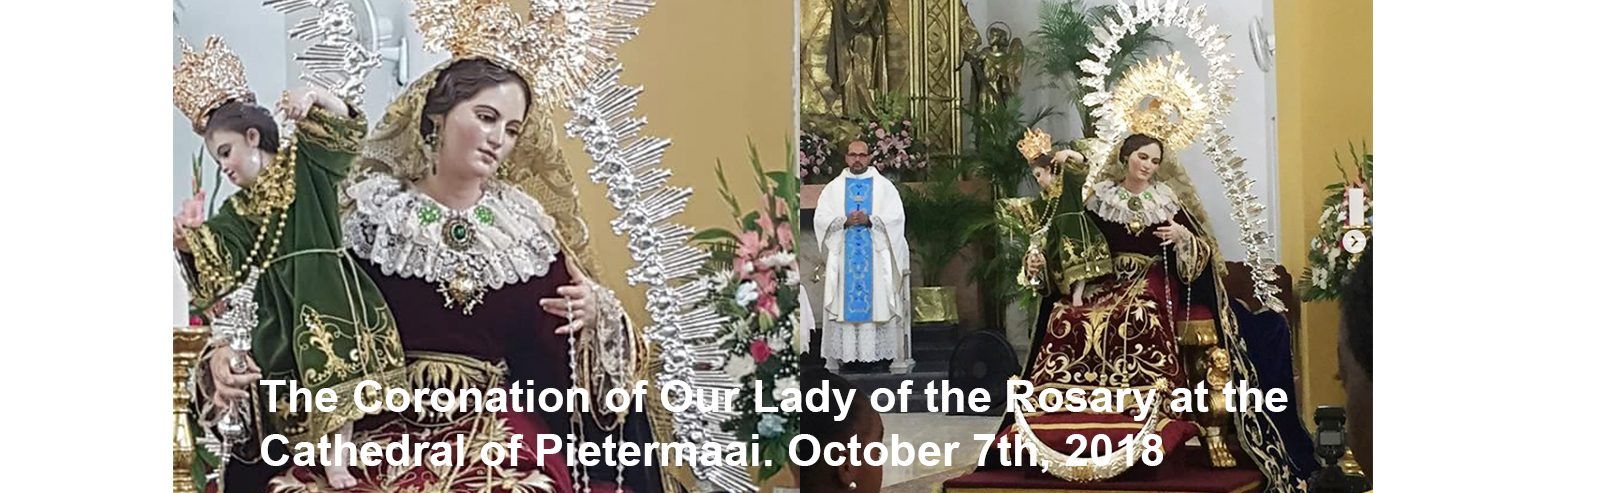 The Coronation of Our Lady of the Rosary at the Cathedral of Pietermaai. October 7th, 2018